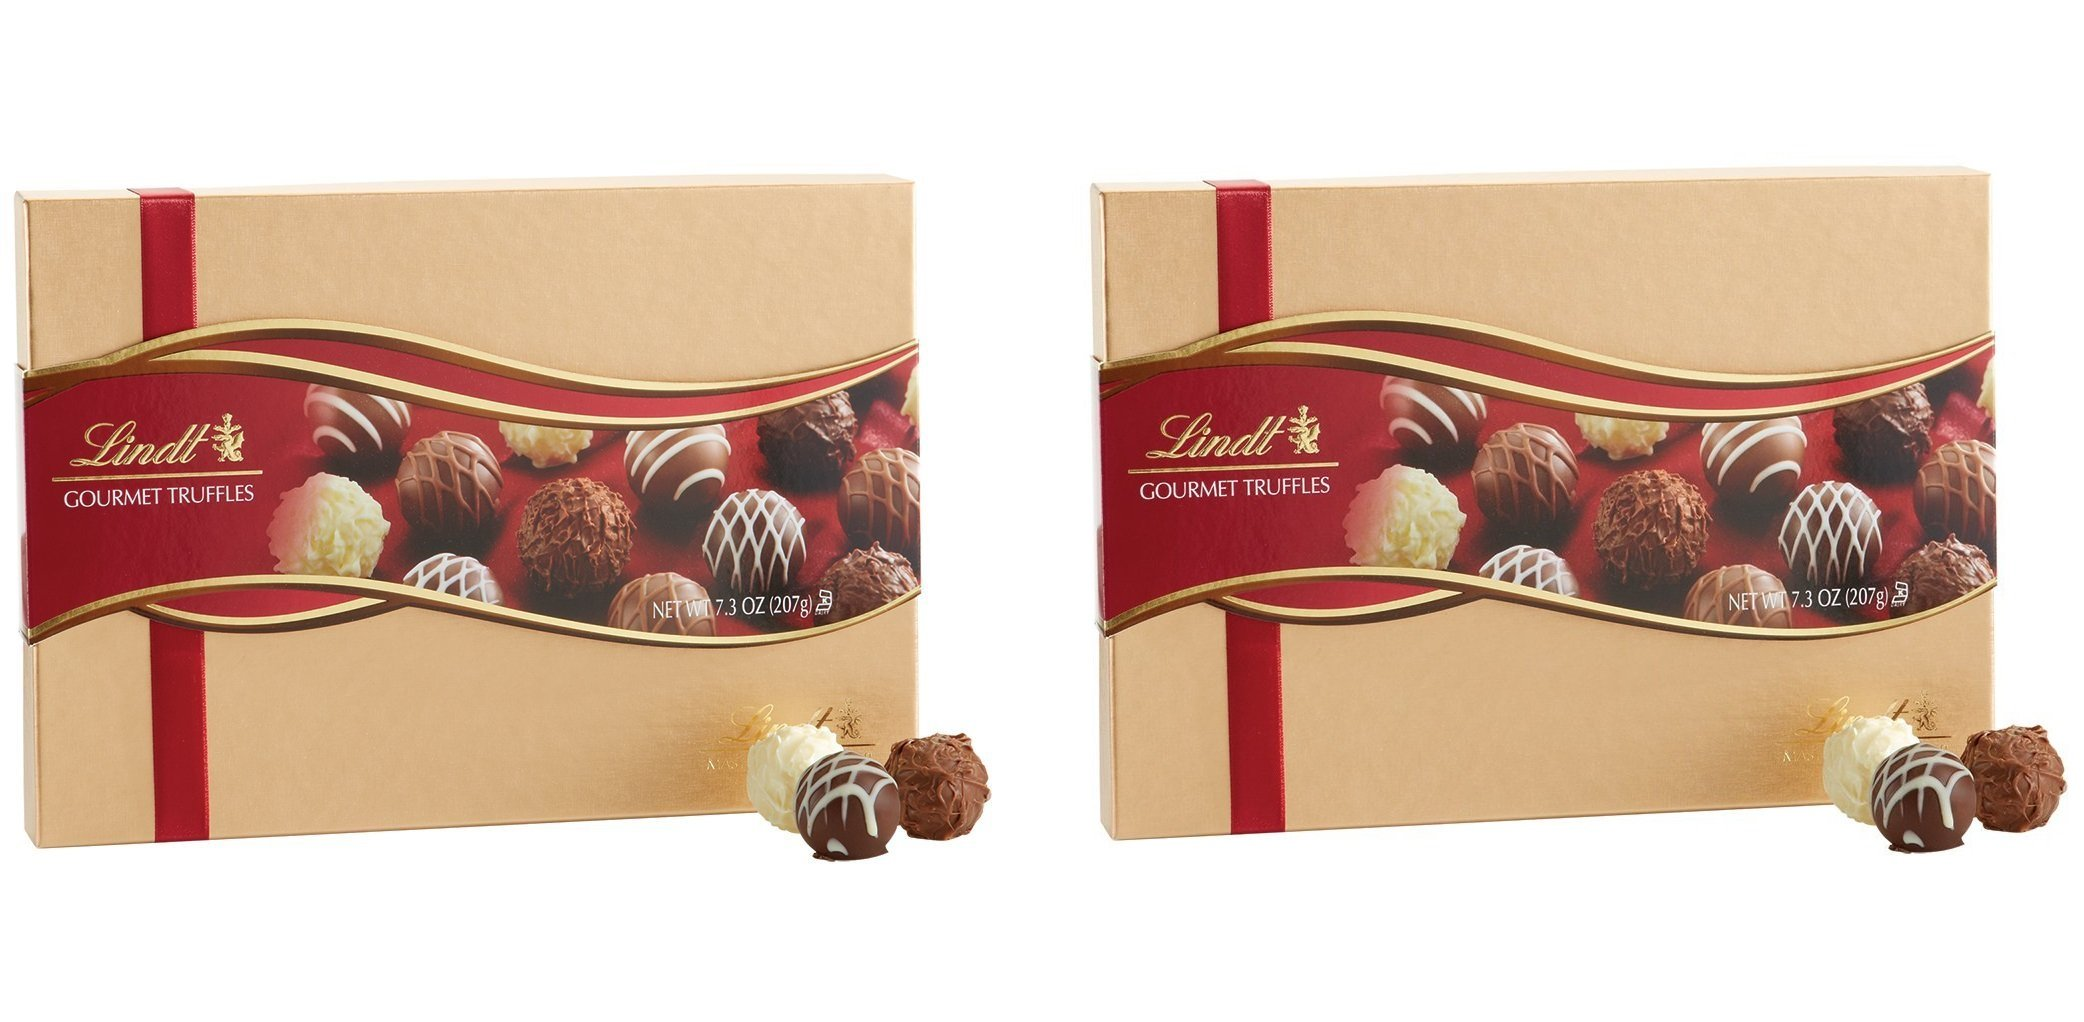 Lindt Lindor Assorted Chocolate Gourmet Truffles, 7.3 oz (Pack of 2)